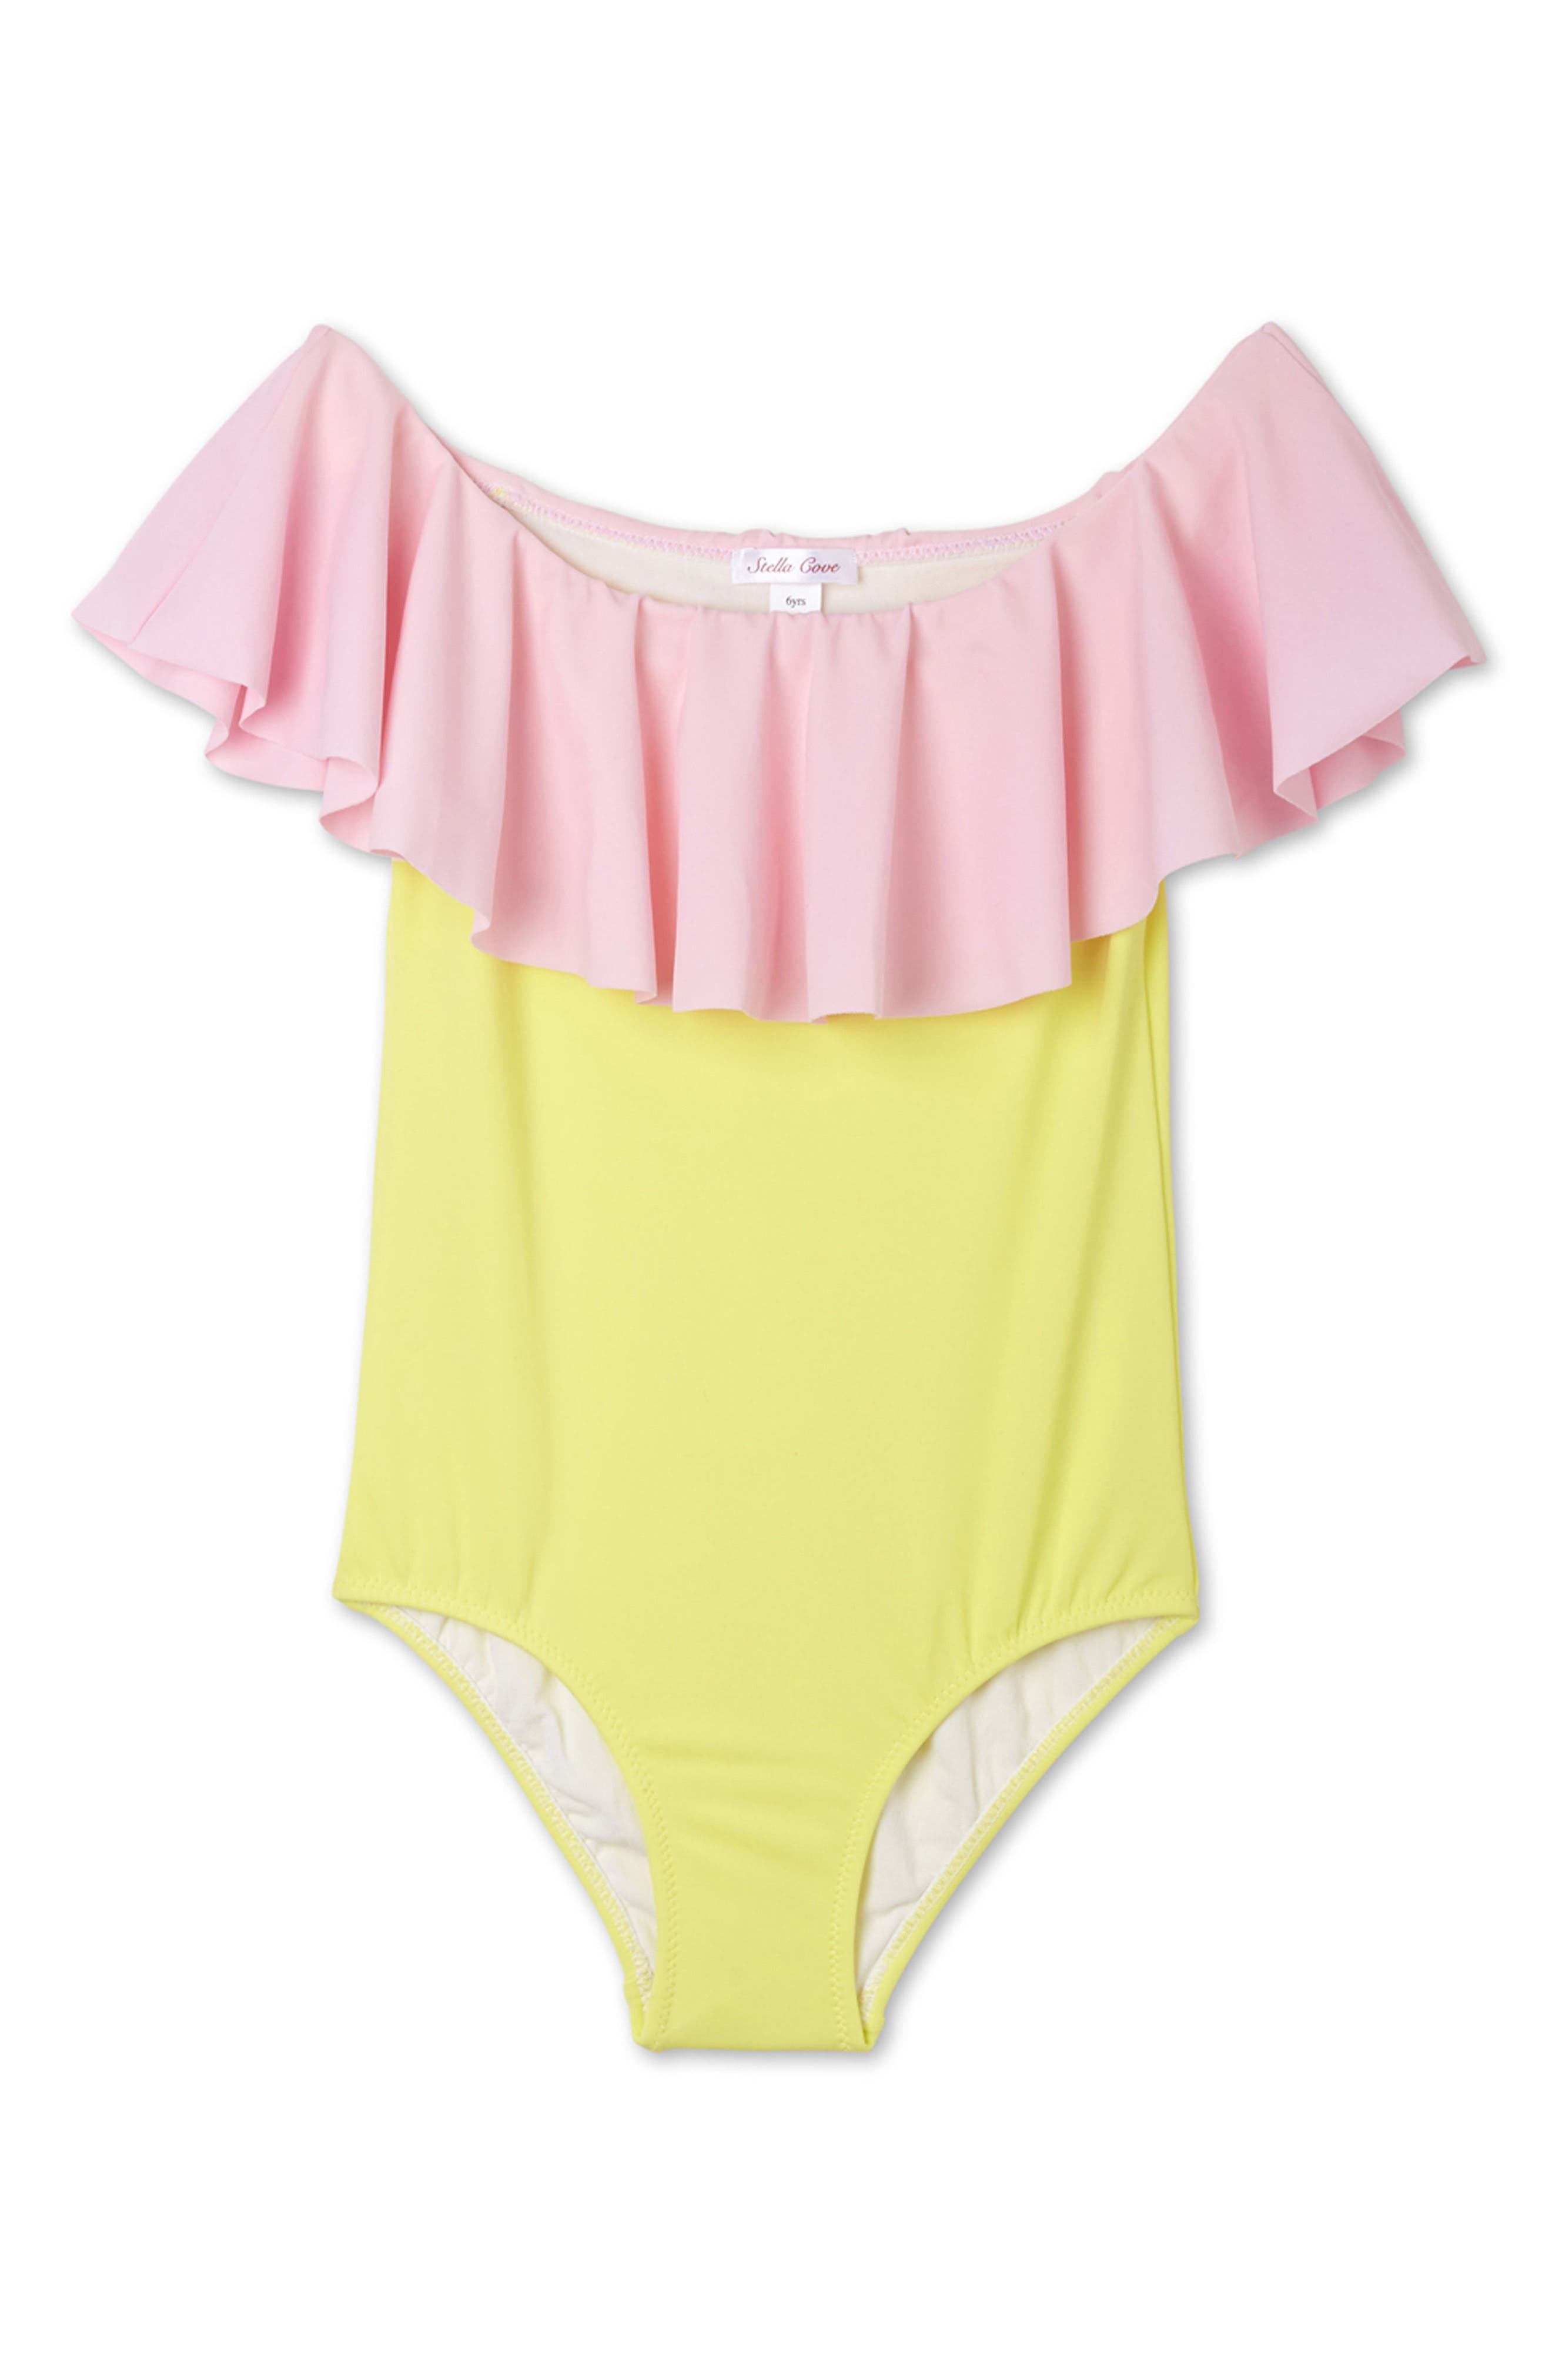 Ruffle One-Piece Swimsuit,                             Main thumbnail 1, color,                             Yellow